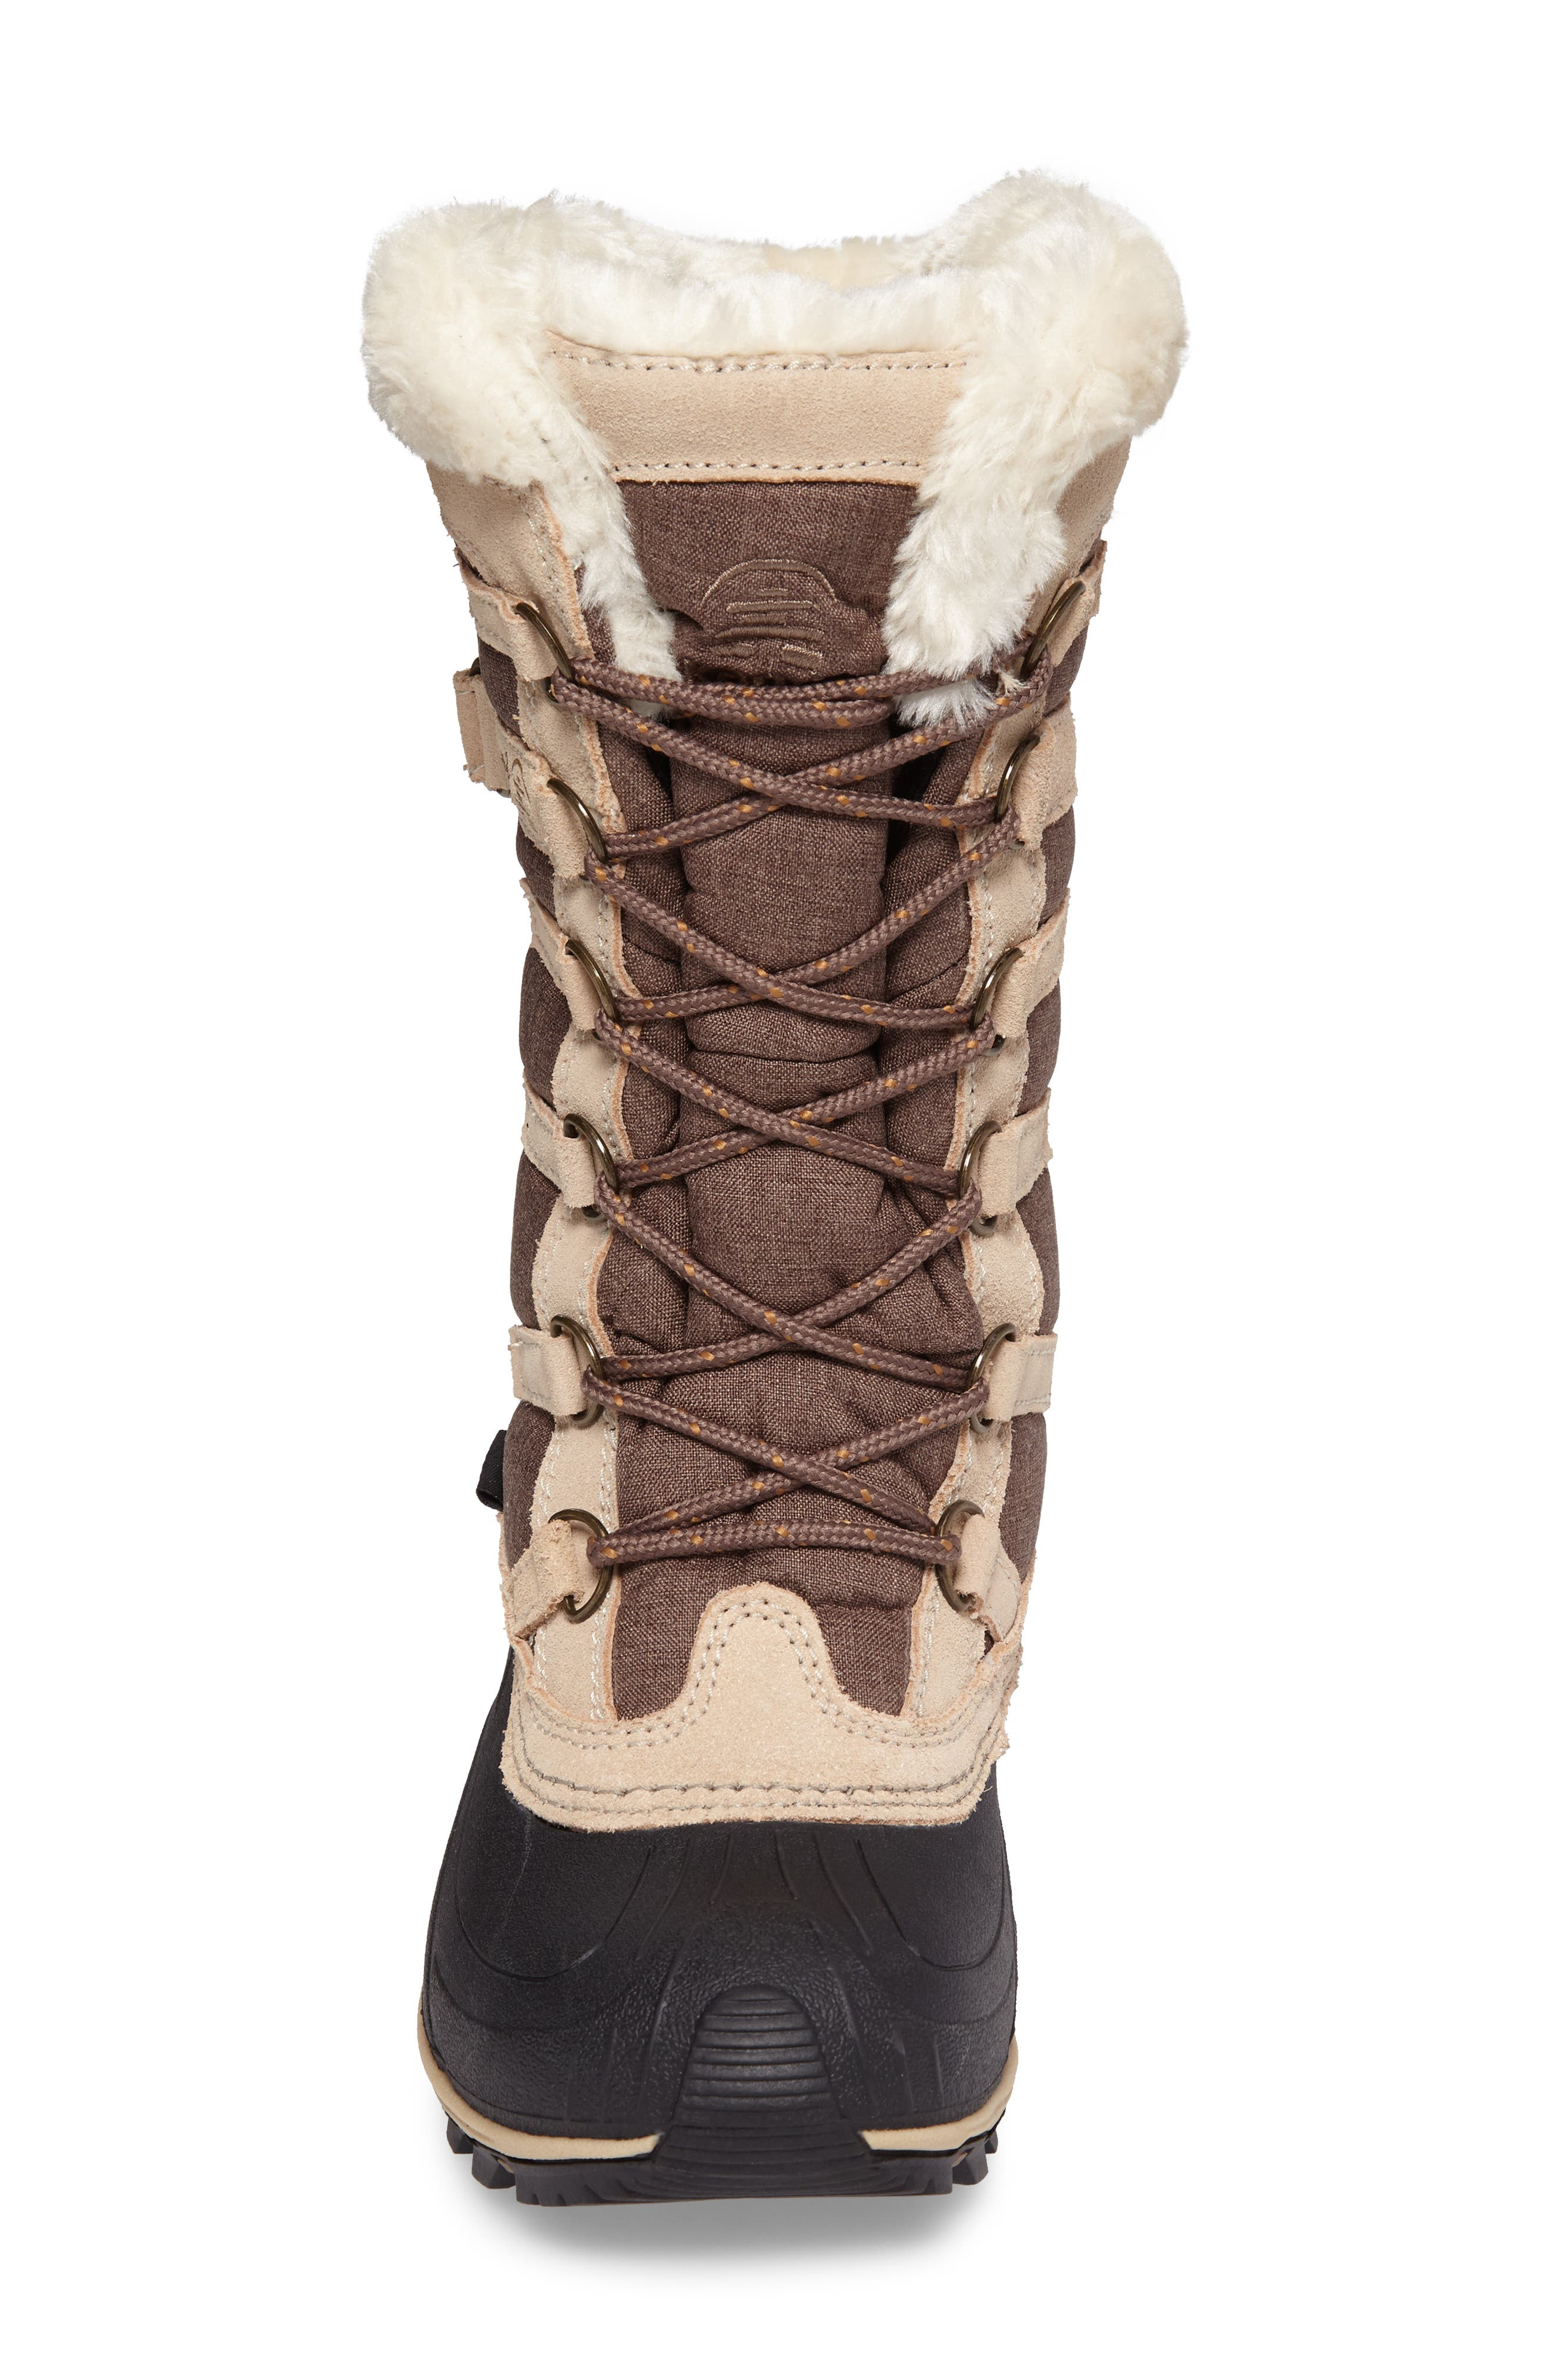 Snowvalley Waterproof Boot with Faux Fur Cuff,                             Alternate thumbnail 4, color,                             BROWN FABRIC